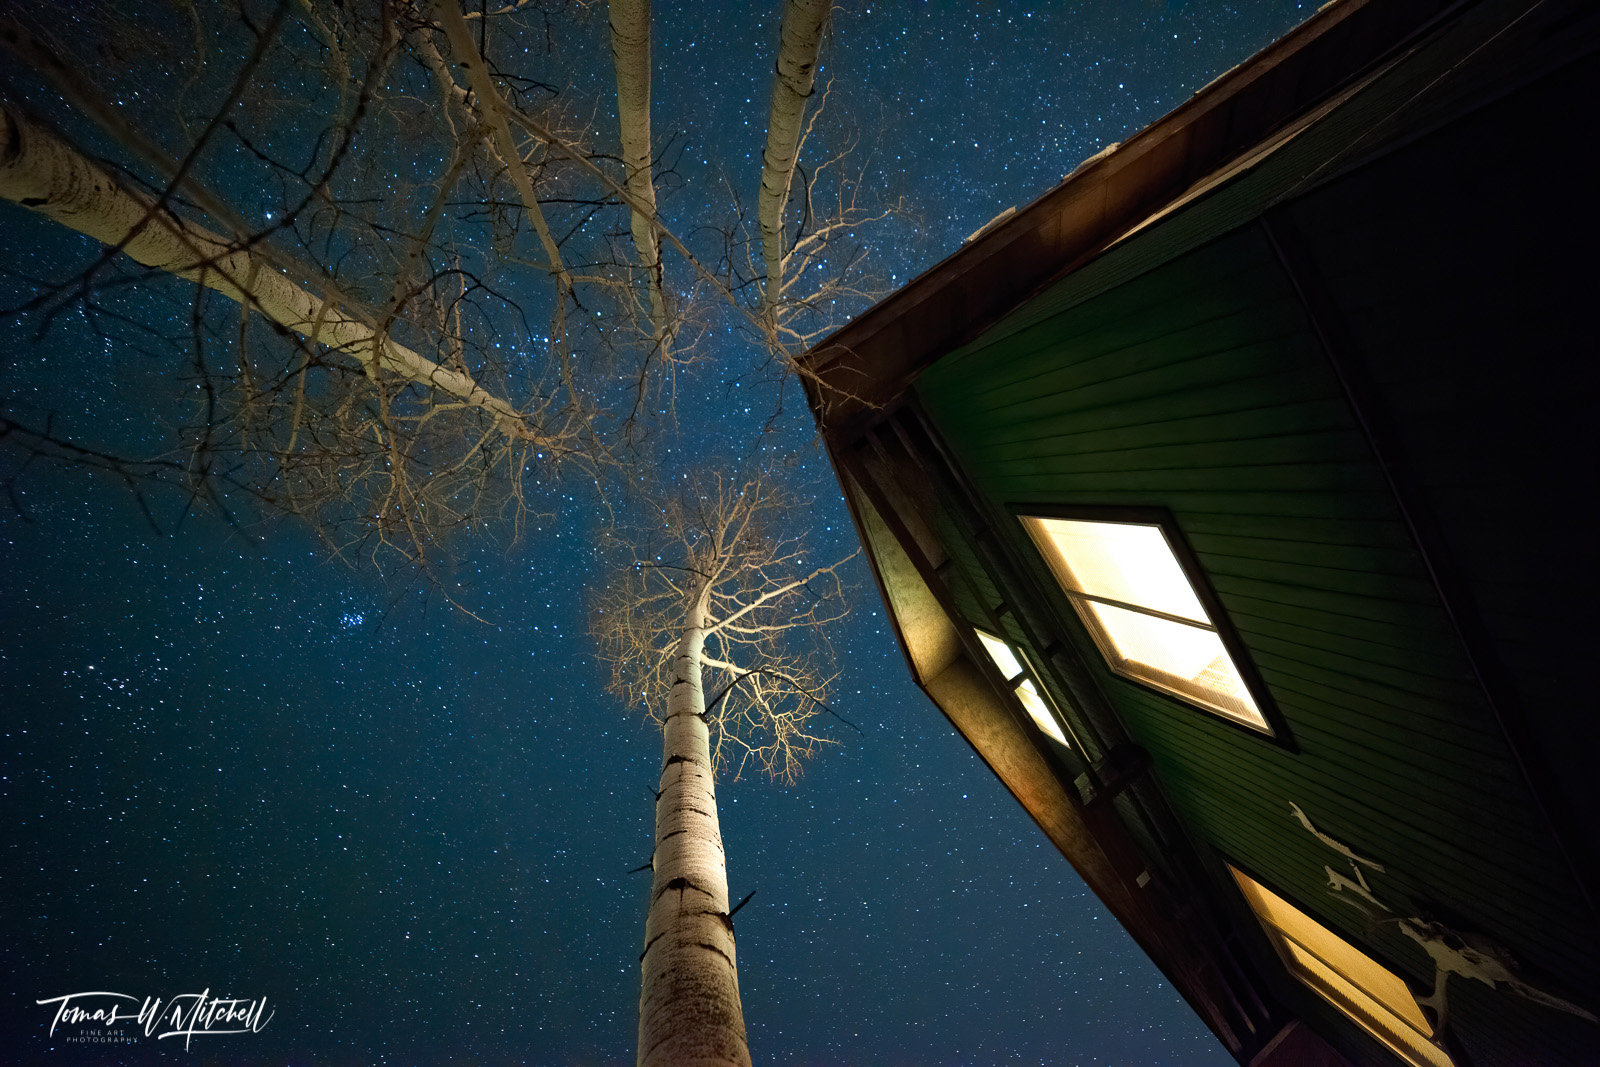 limited edition, fine art, prints, cabin, oakley, utah, photograph, night sky, quaking aspen, trees, blue, pleiades, winter, photo